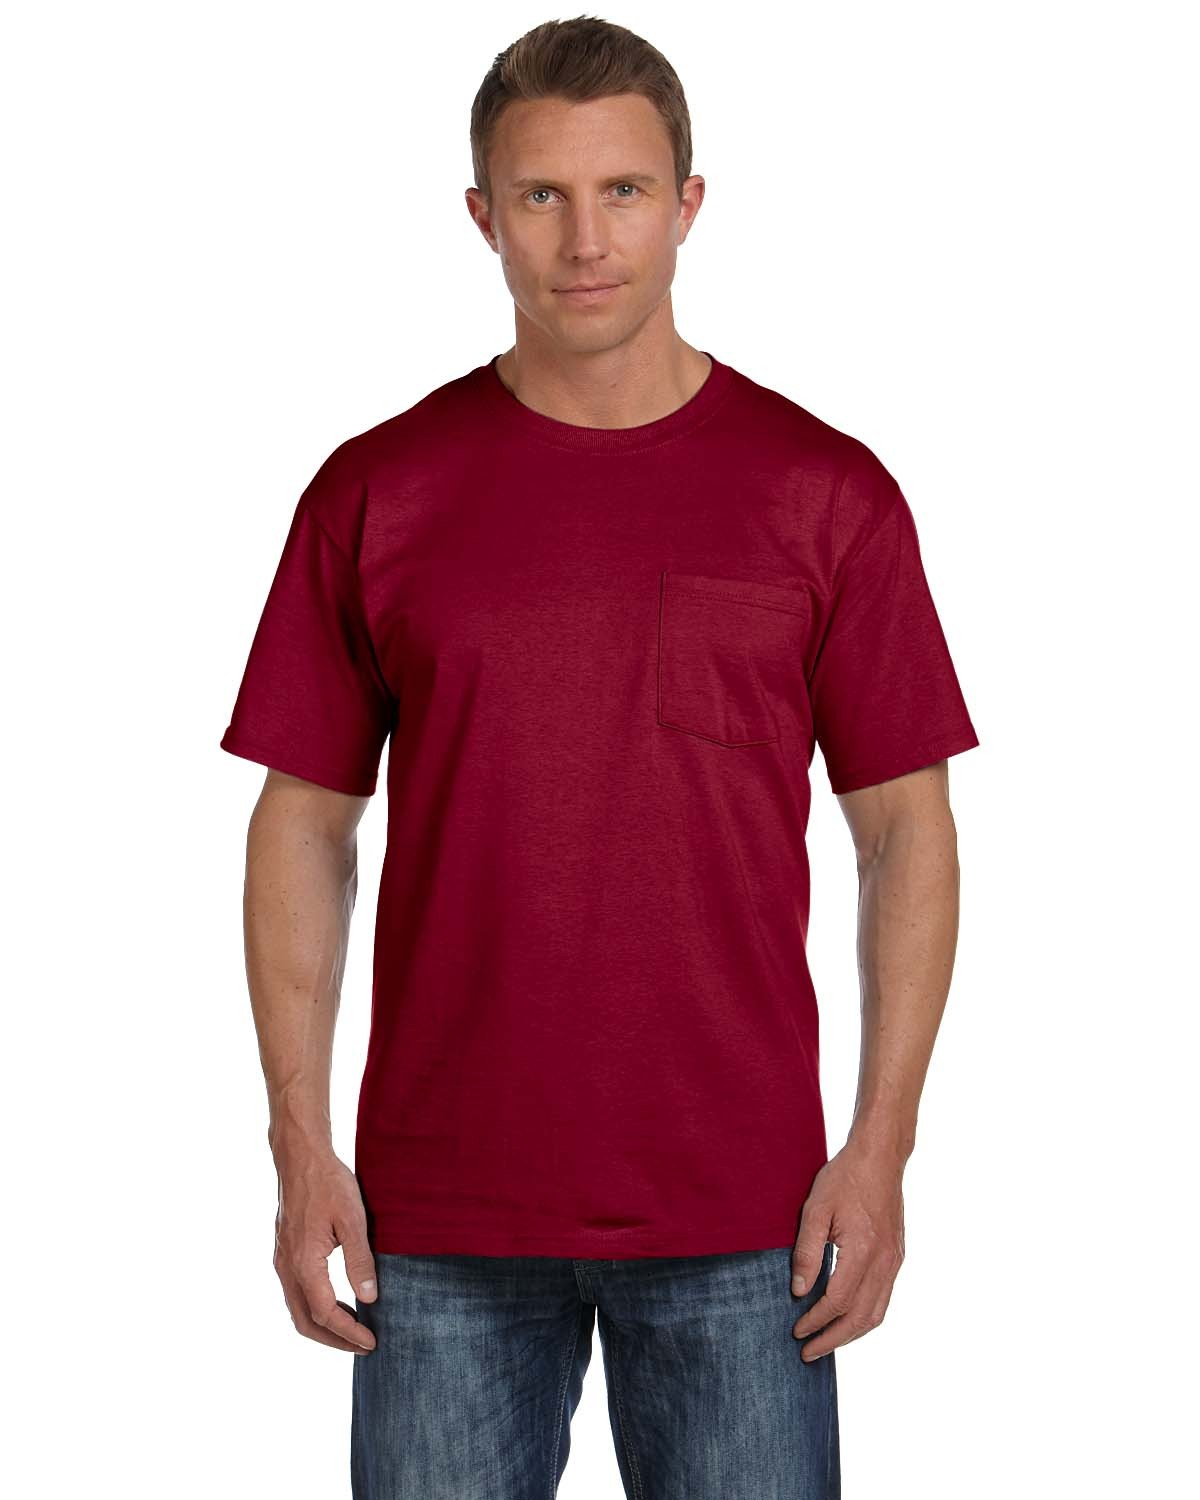 3931P Fruit of the Loom MAROON